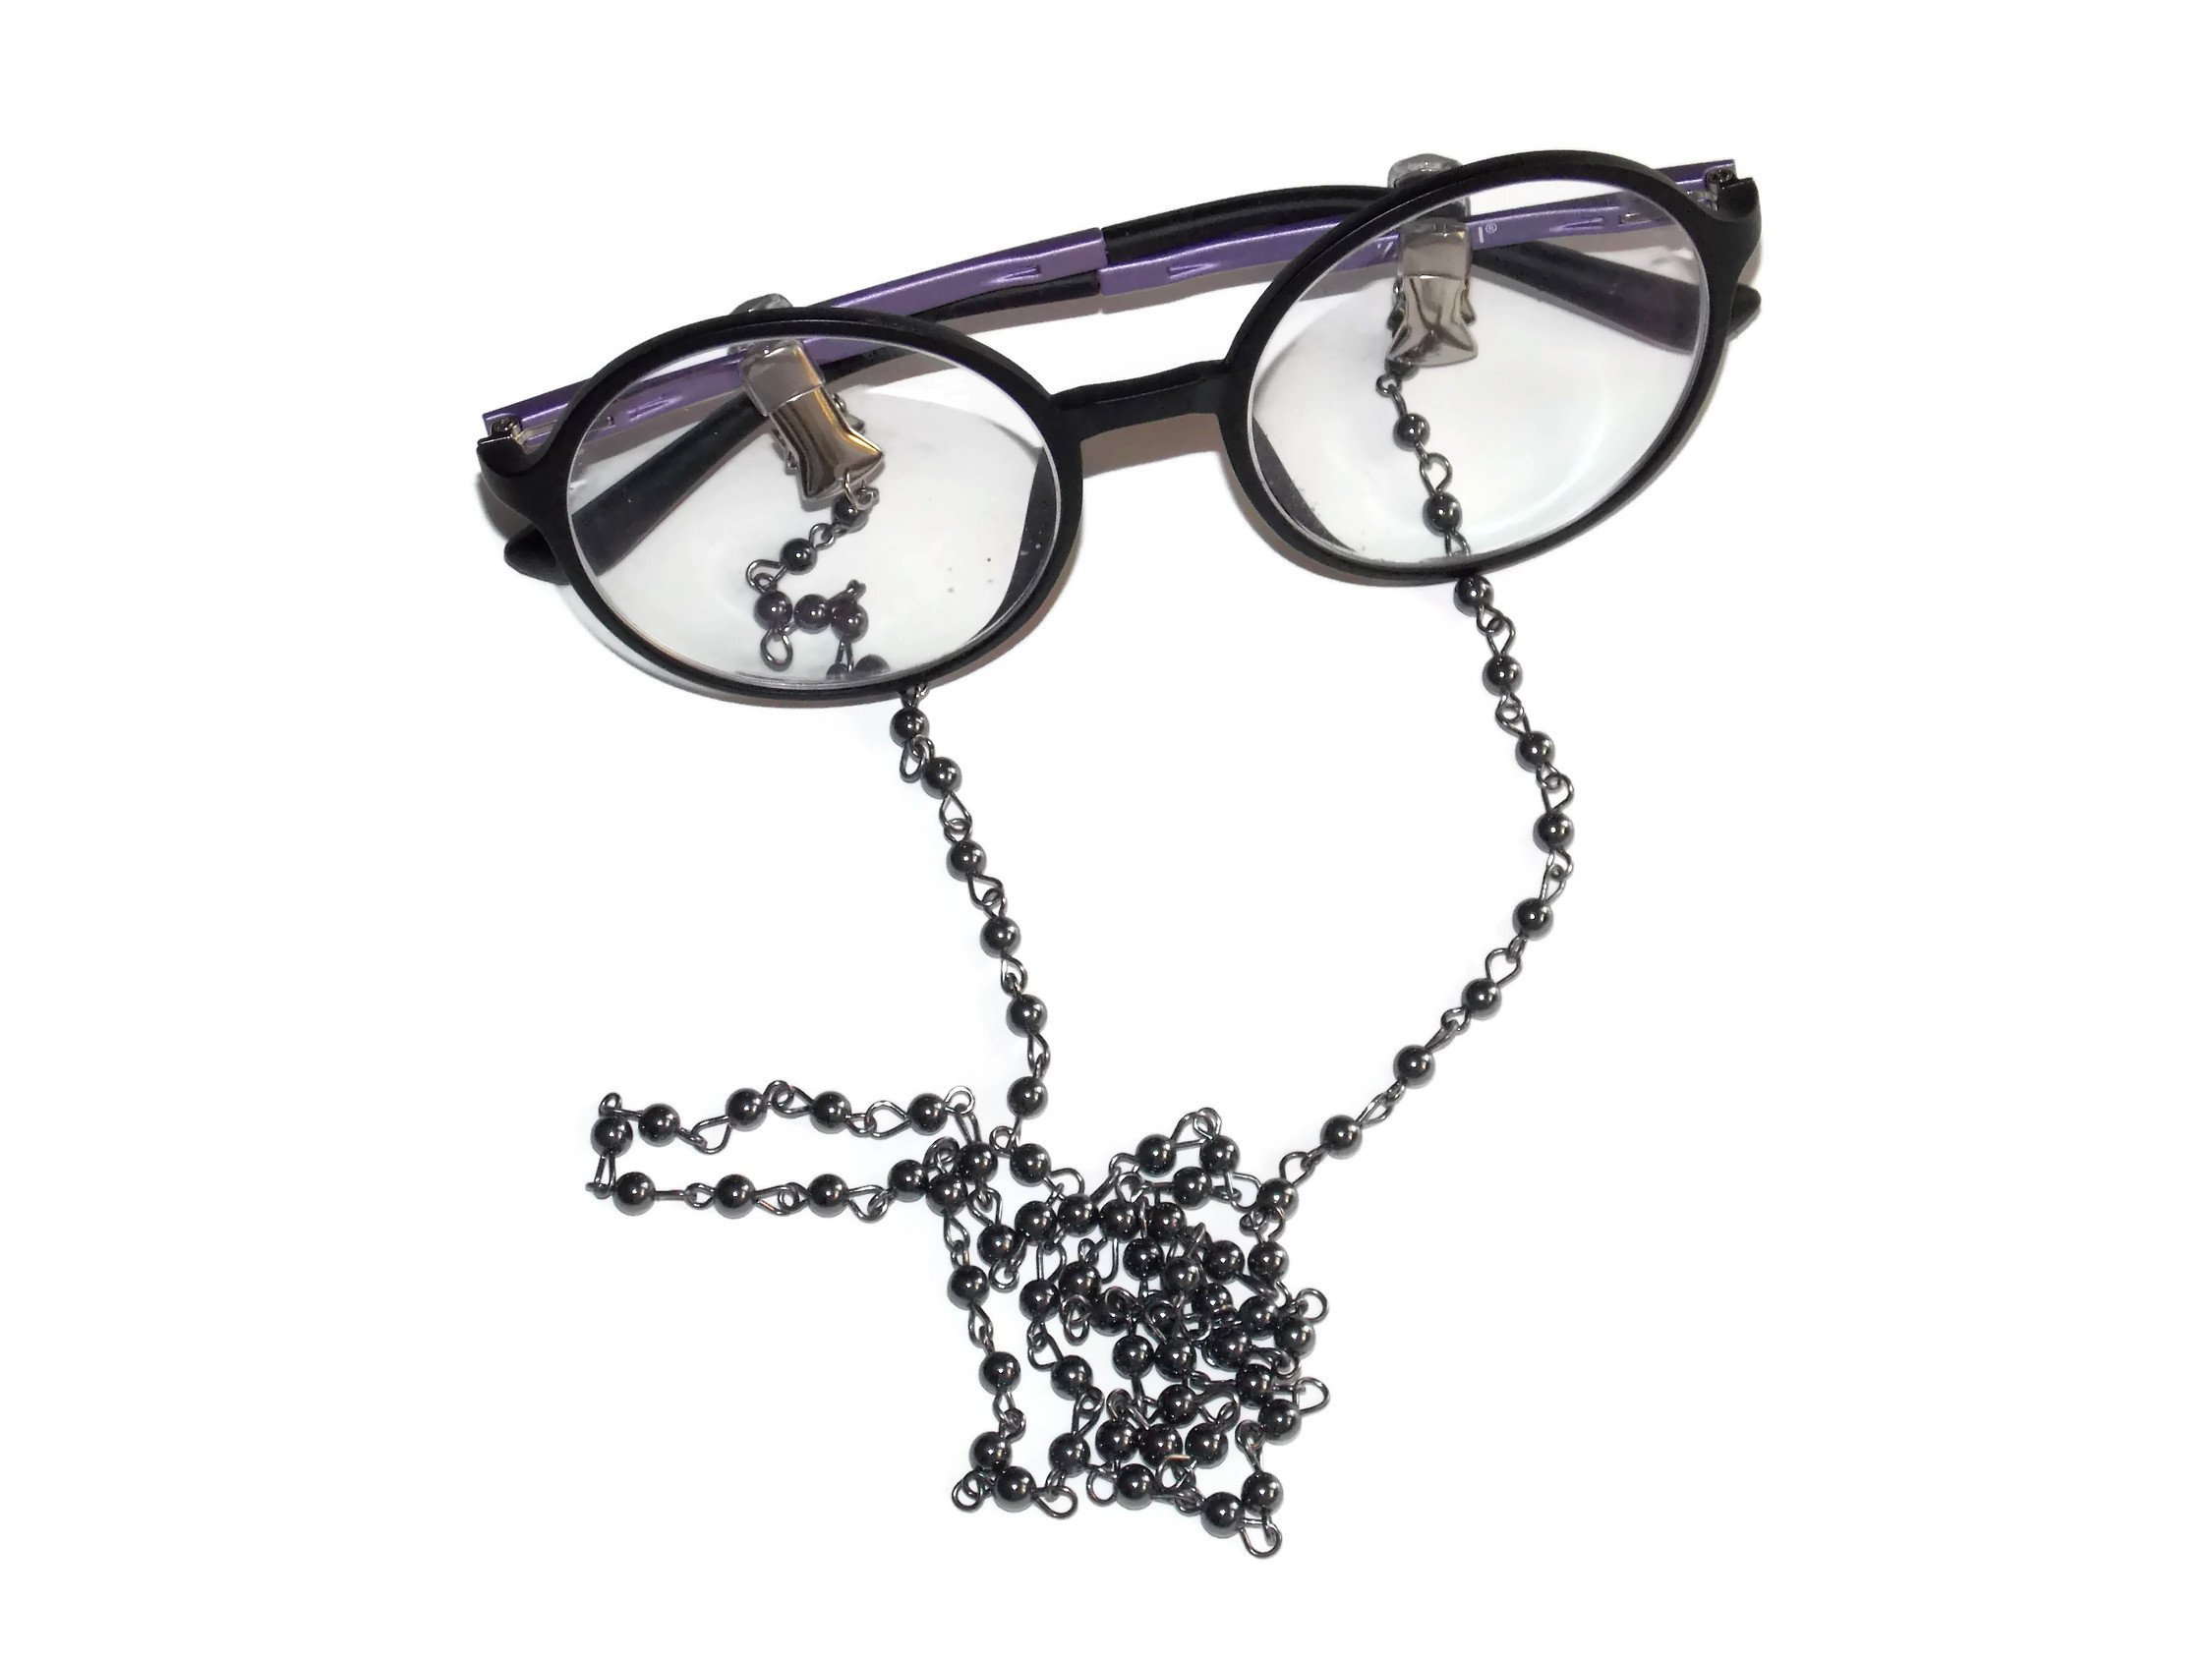 26 Inch Beaded Eyeglass Chain Vintage Style Clip On